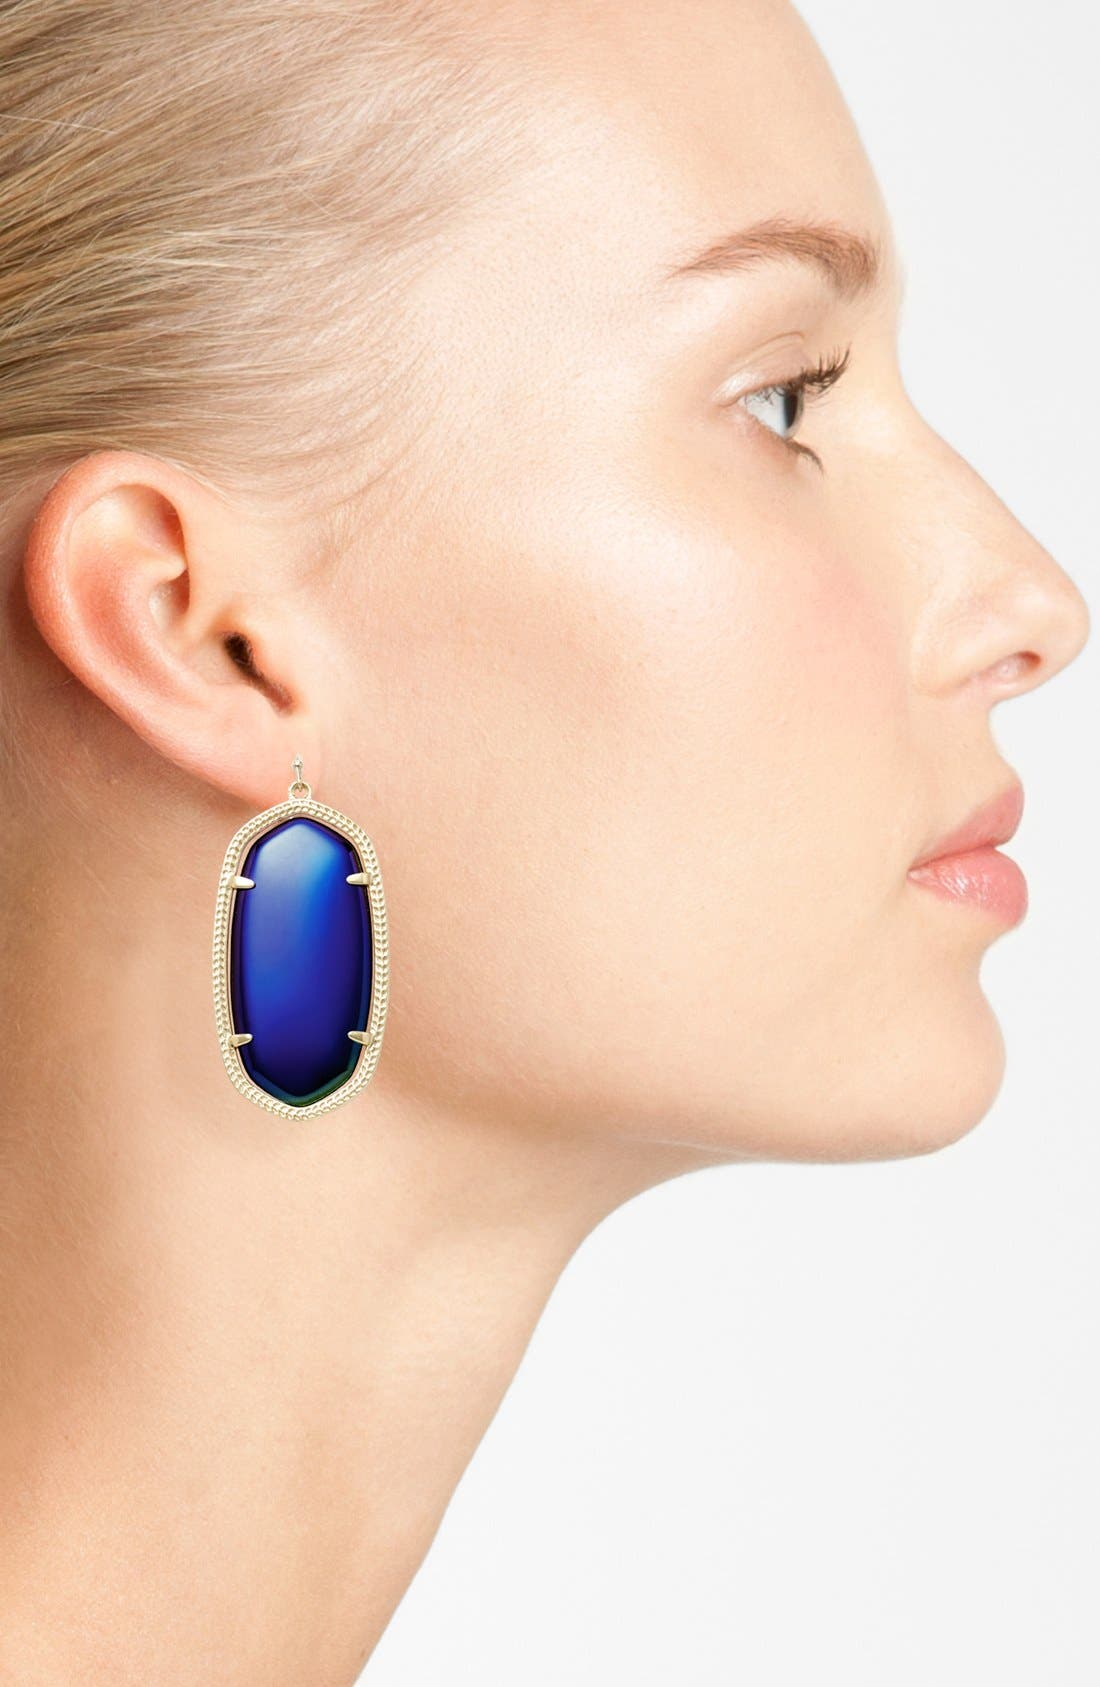 Danielle - Large Oval Statement Earrings,                             Alternate thumbnail 127, color,